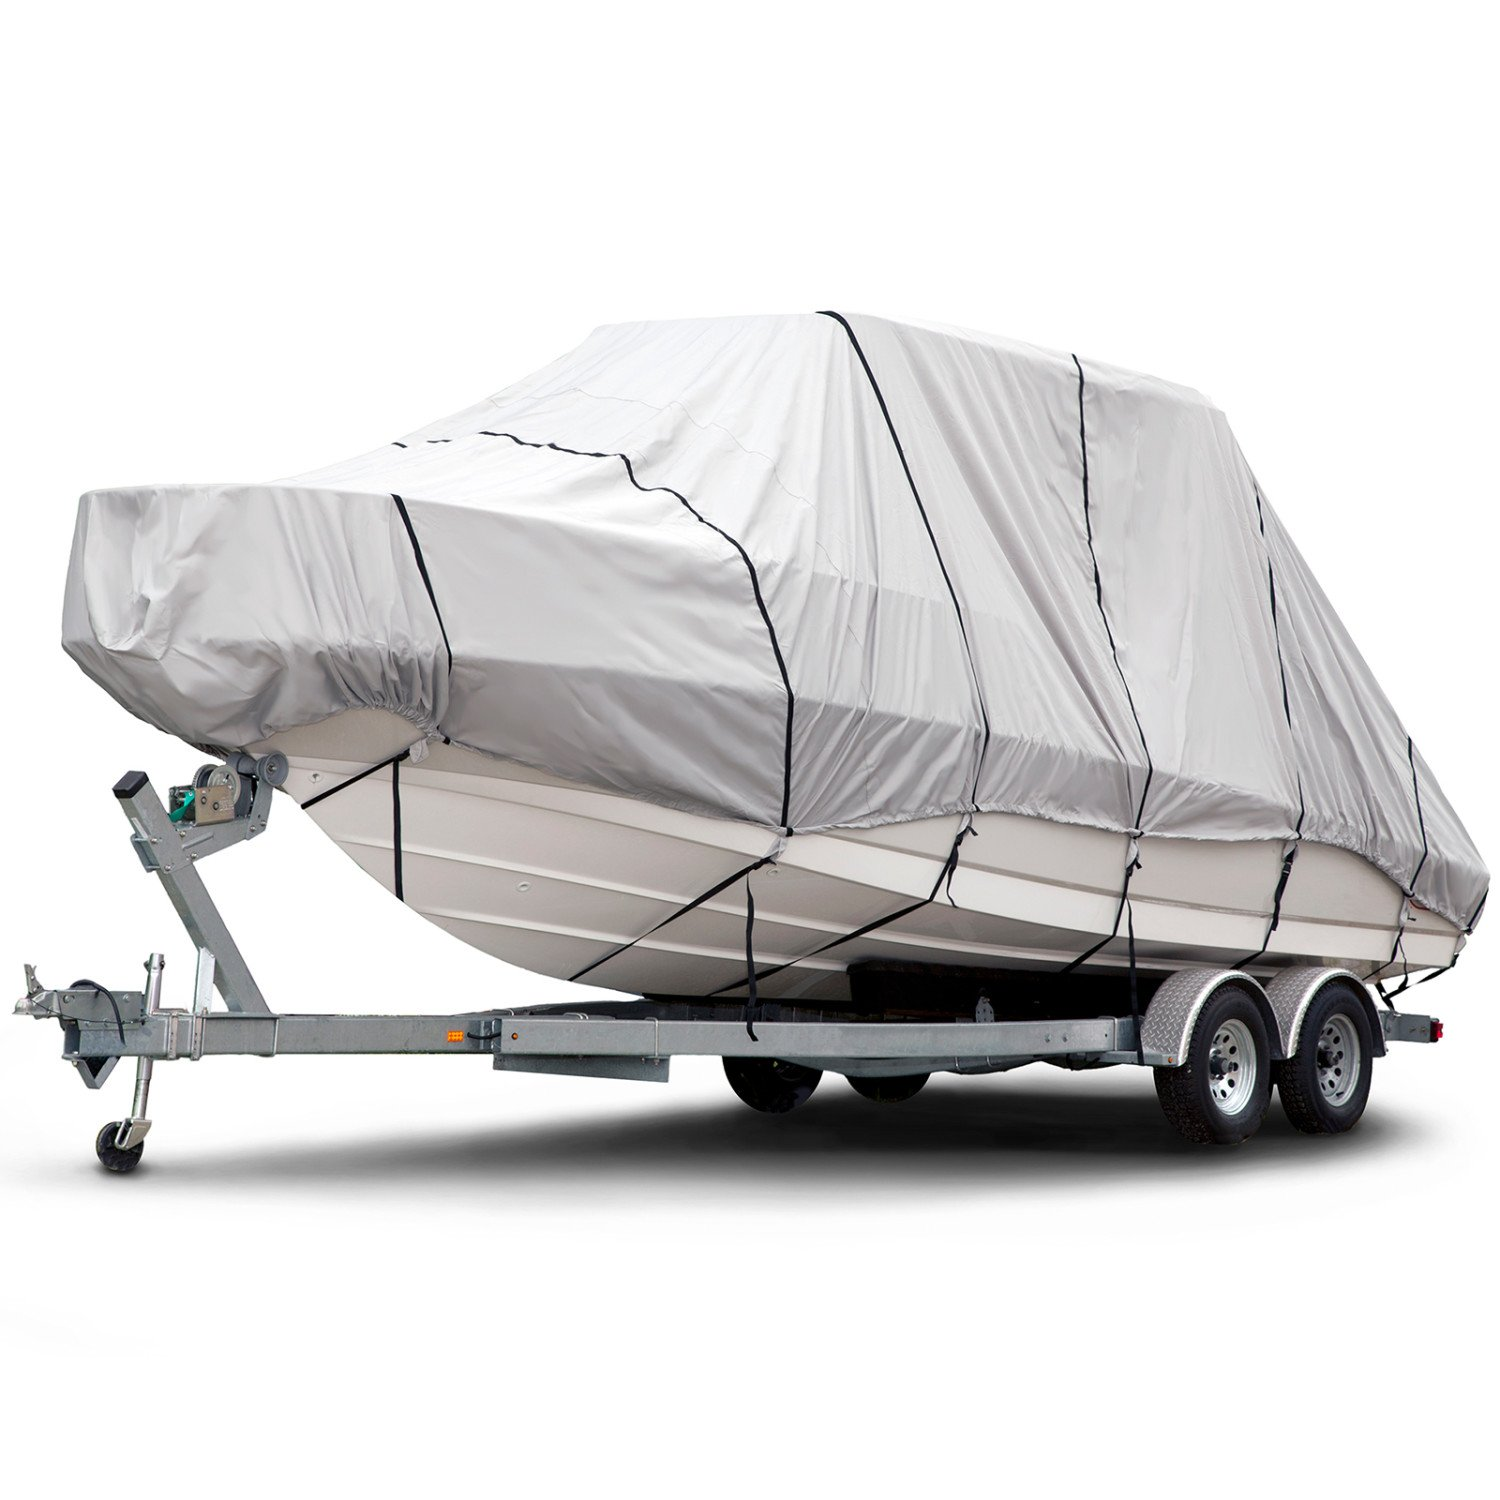 Budge B-1221-X8 Gray 24'-26' Long (Beam Width Up to 106'') Boat Cover